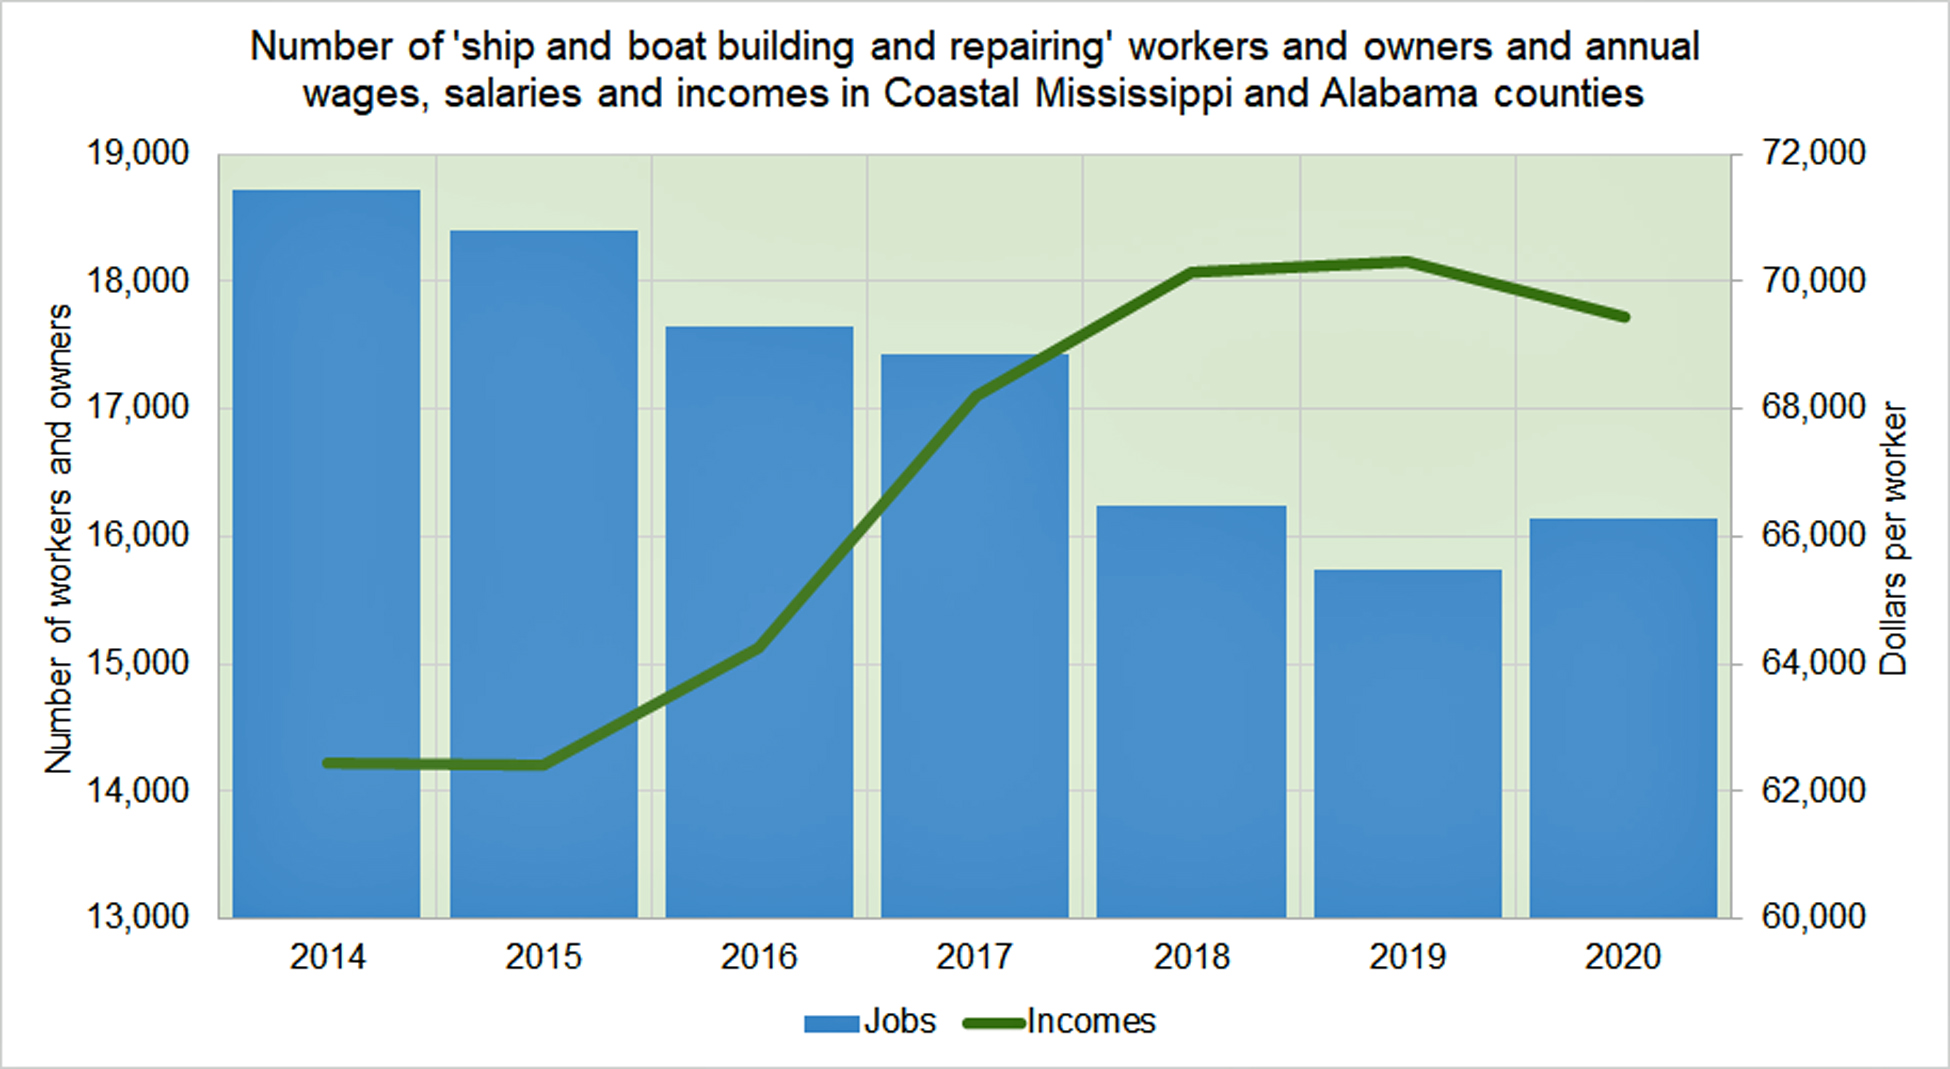 number_of_workers_and_owners_of_ship_and_boat_building_in_coastal_ms_and_al.jpg